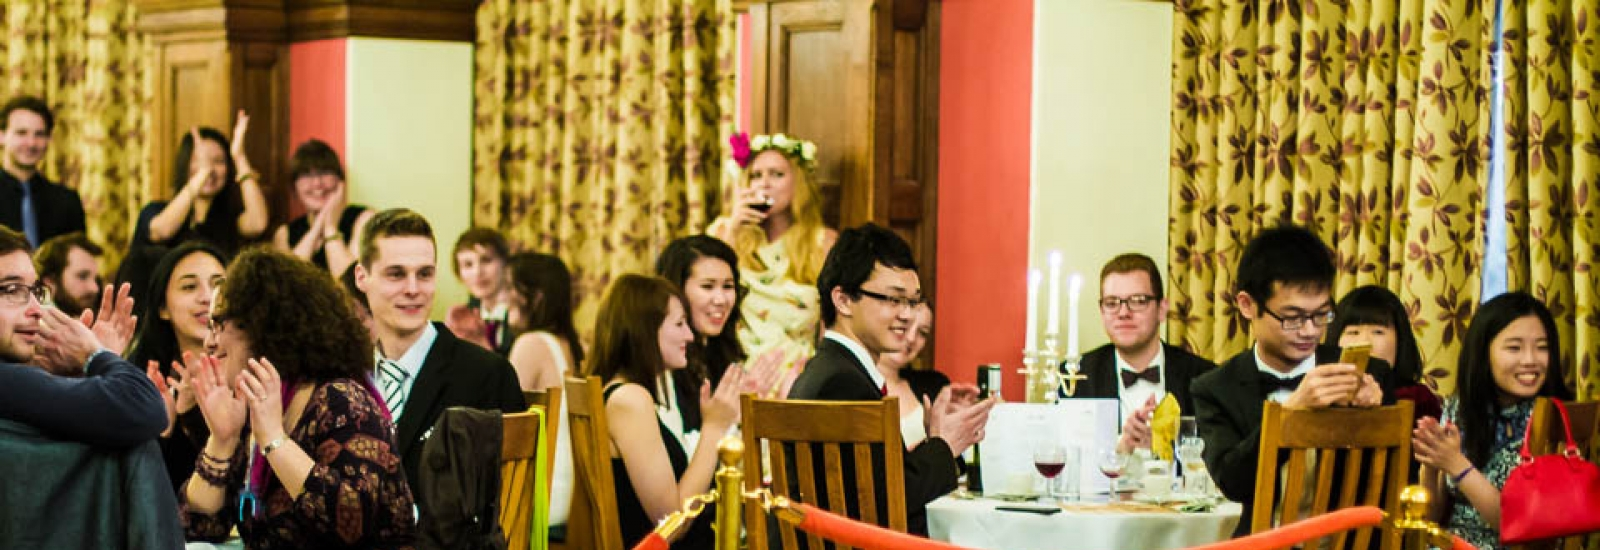 Conferences and Occasions at St Hilda's College, University of Oxford